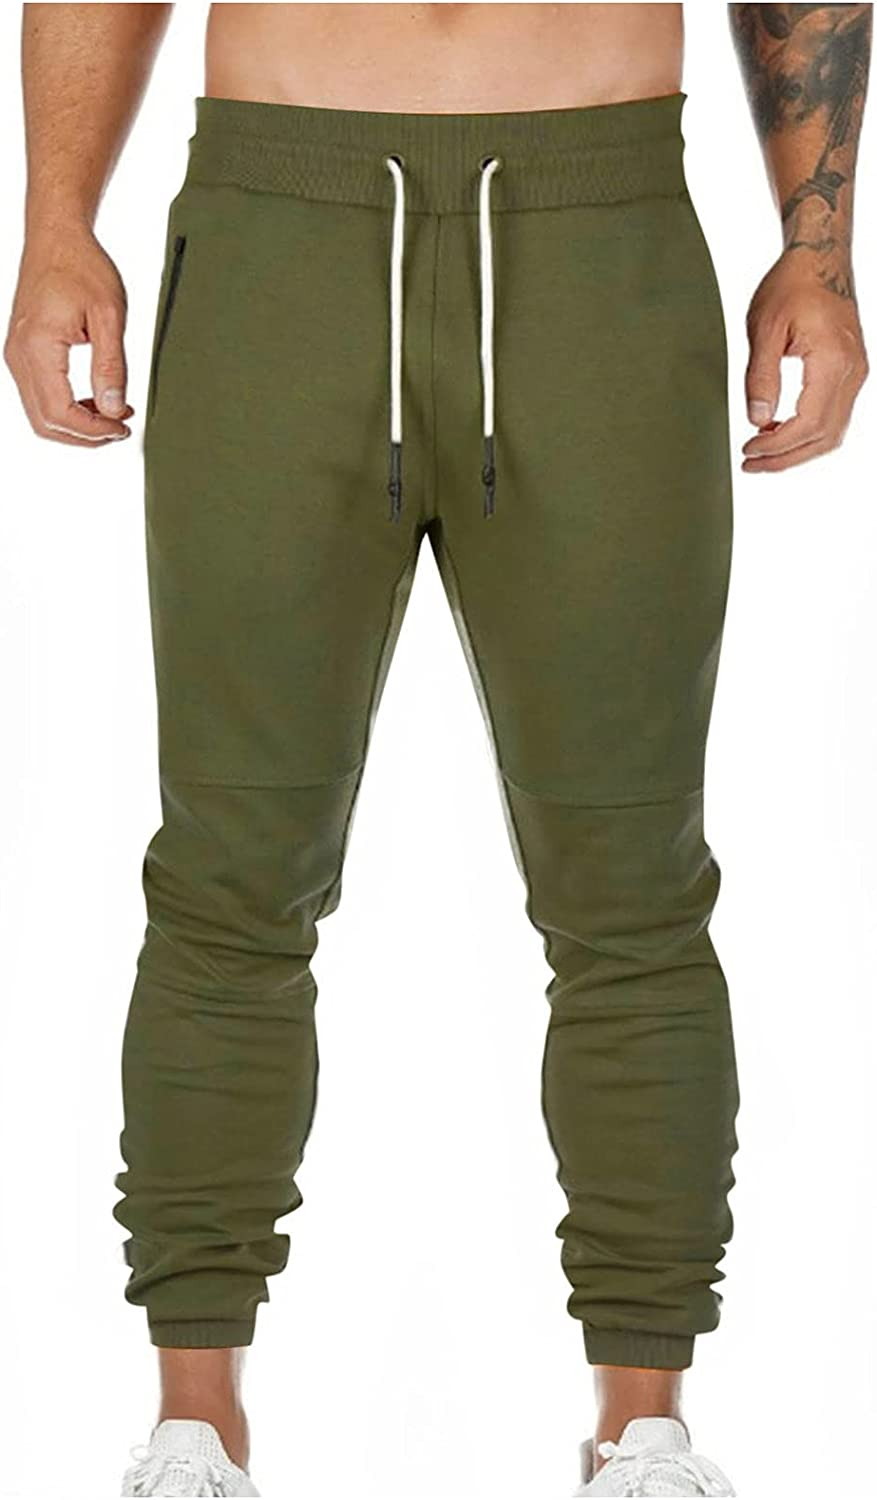 Men's Casual Pants Drawstring Sweat Jogging Cargo with Pockets Joggers Long Sports Active for Men Gym Training Pants